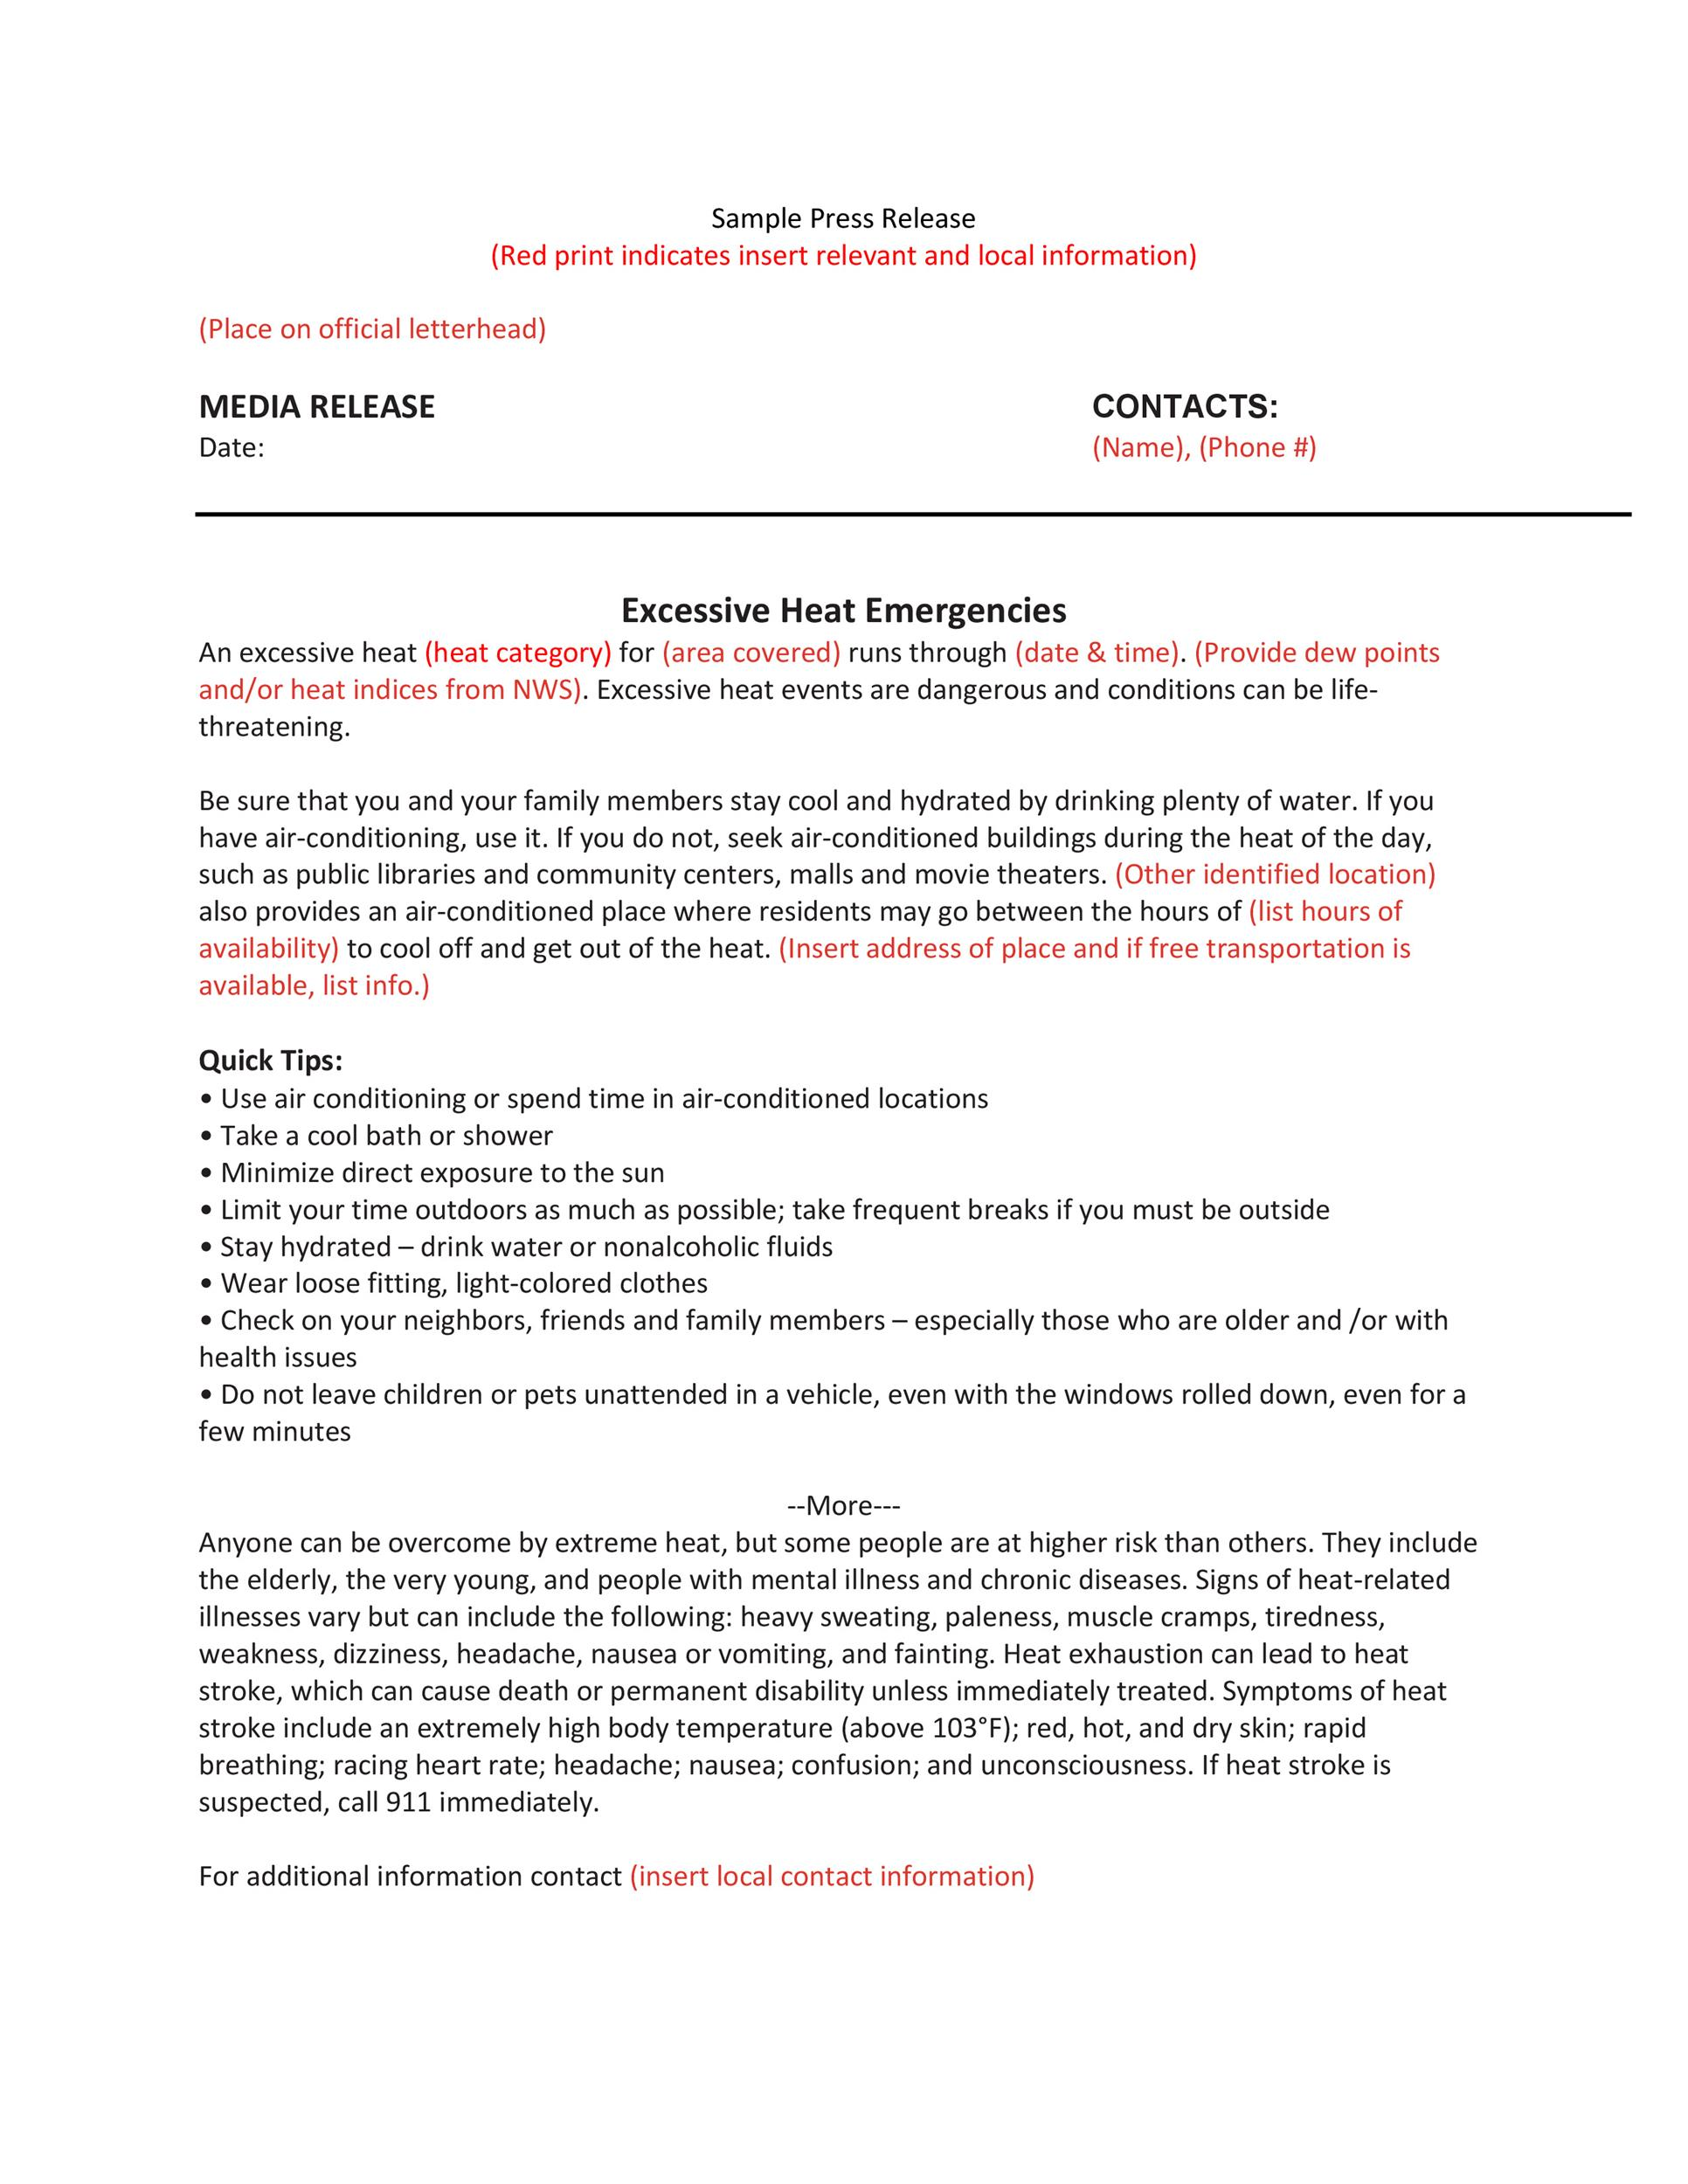 Press Release Template 46 Press Release Format Templates Examples Samples ᐅ Template Lab